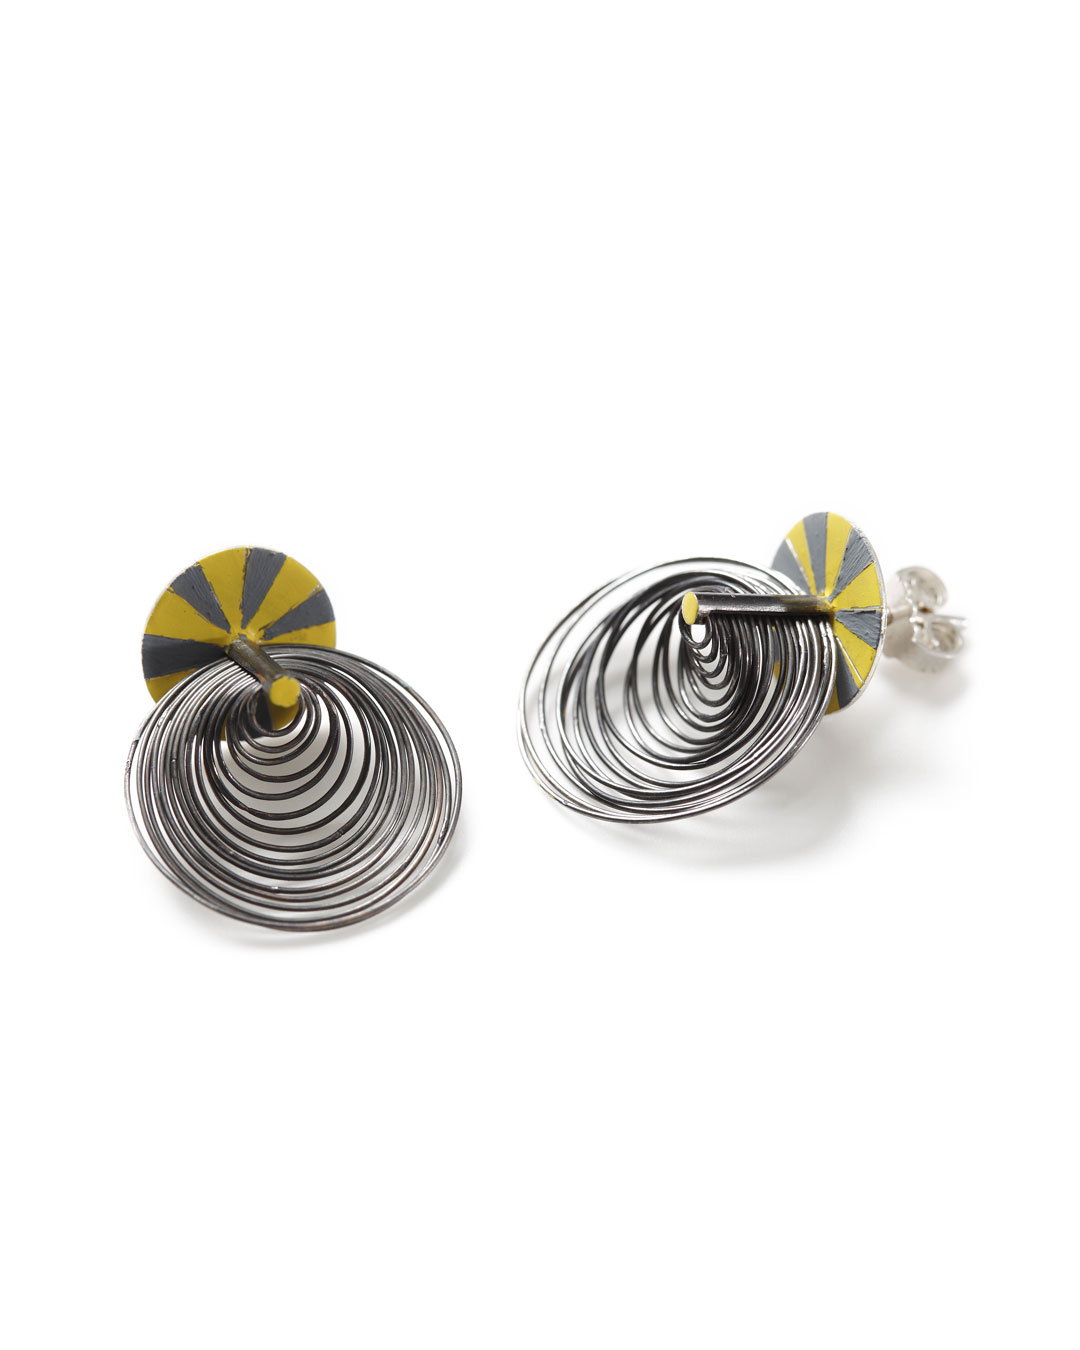 Julie Mollenhauer, untitled, 2012, earrings; silver, lacquer, 25 x 20 x 11 mm, €1000